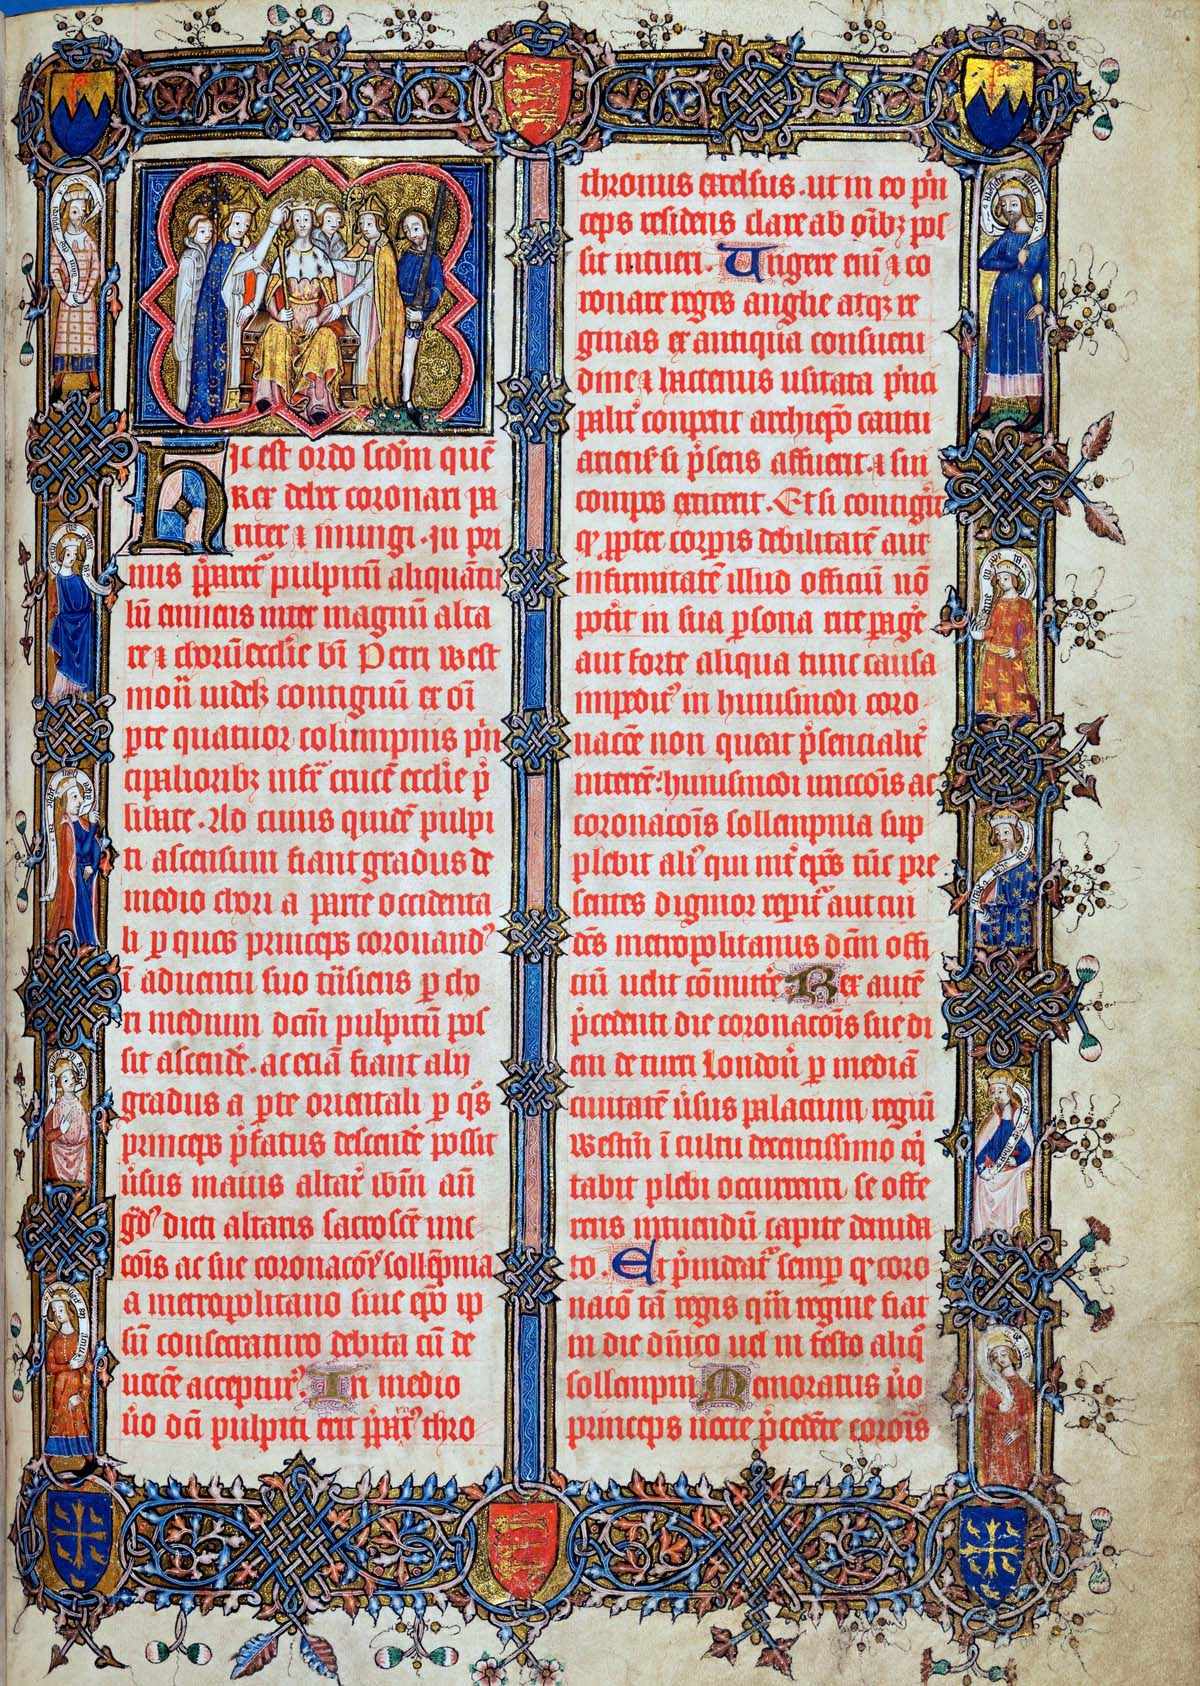 a full page of illuminated writing in red ink Latin